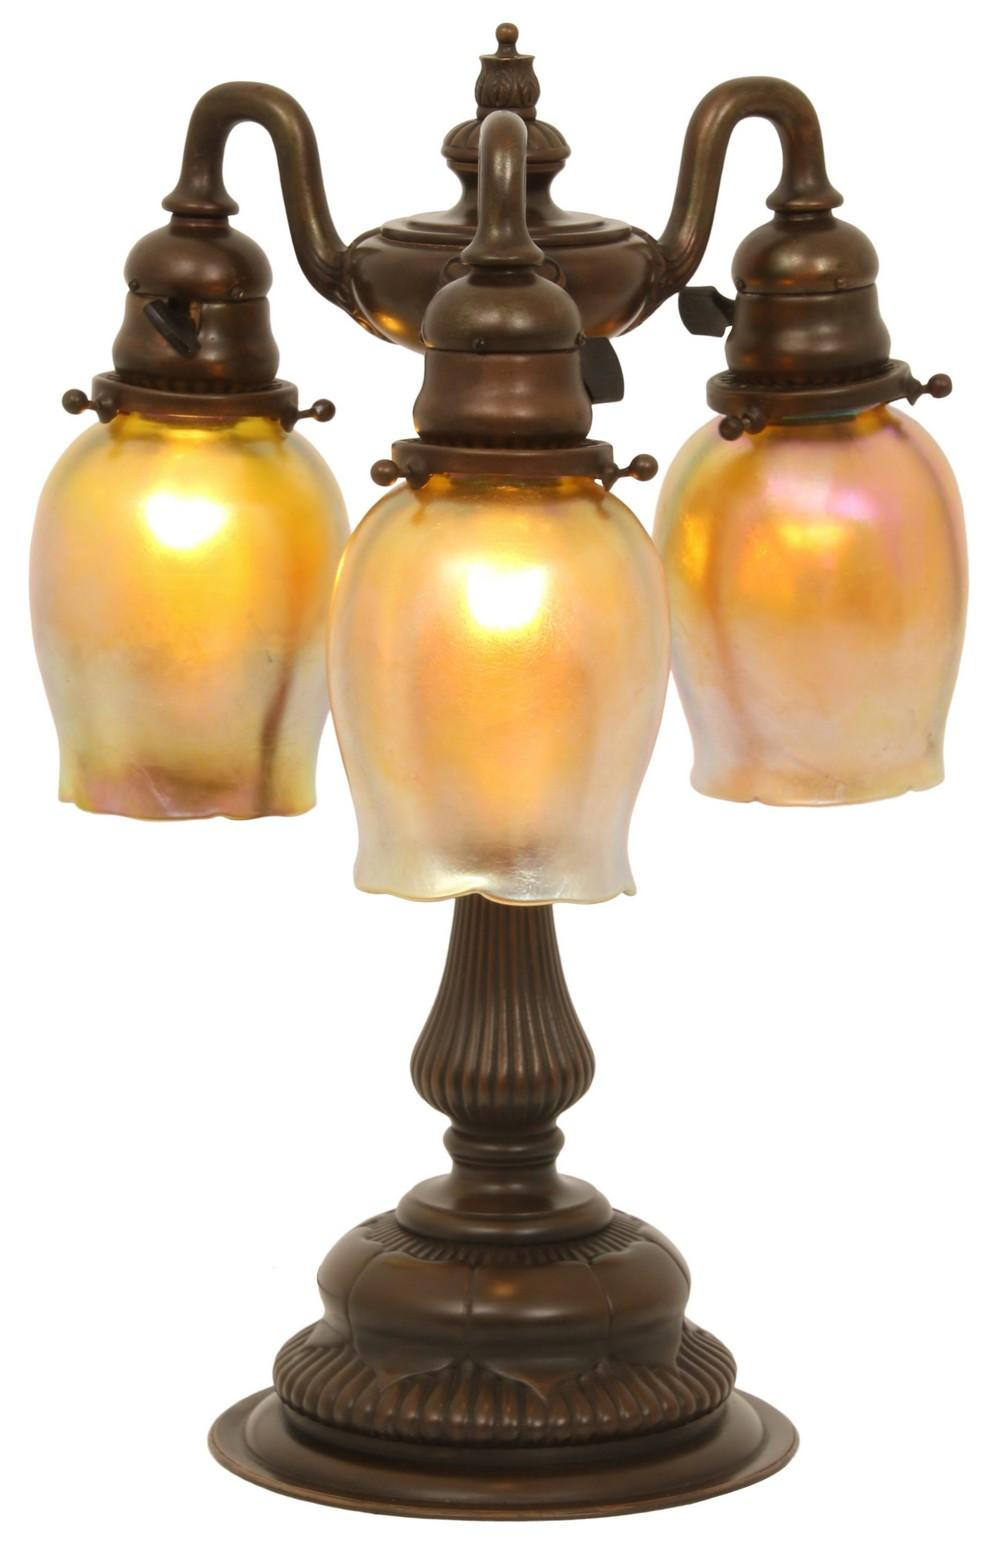 Tiffany Studios Three Light Tulip Lamp